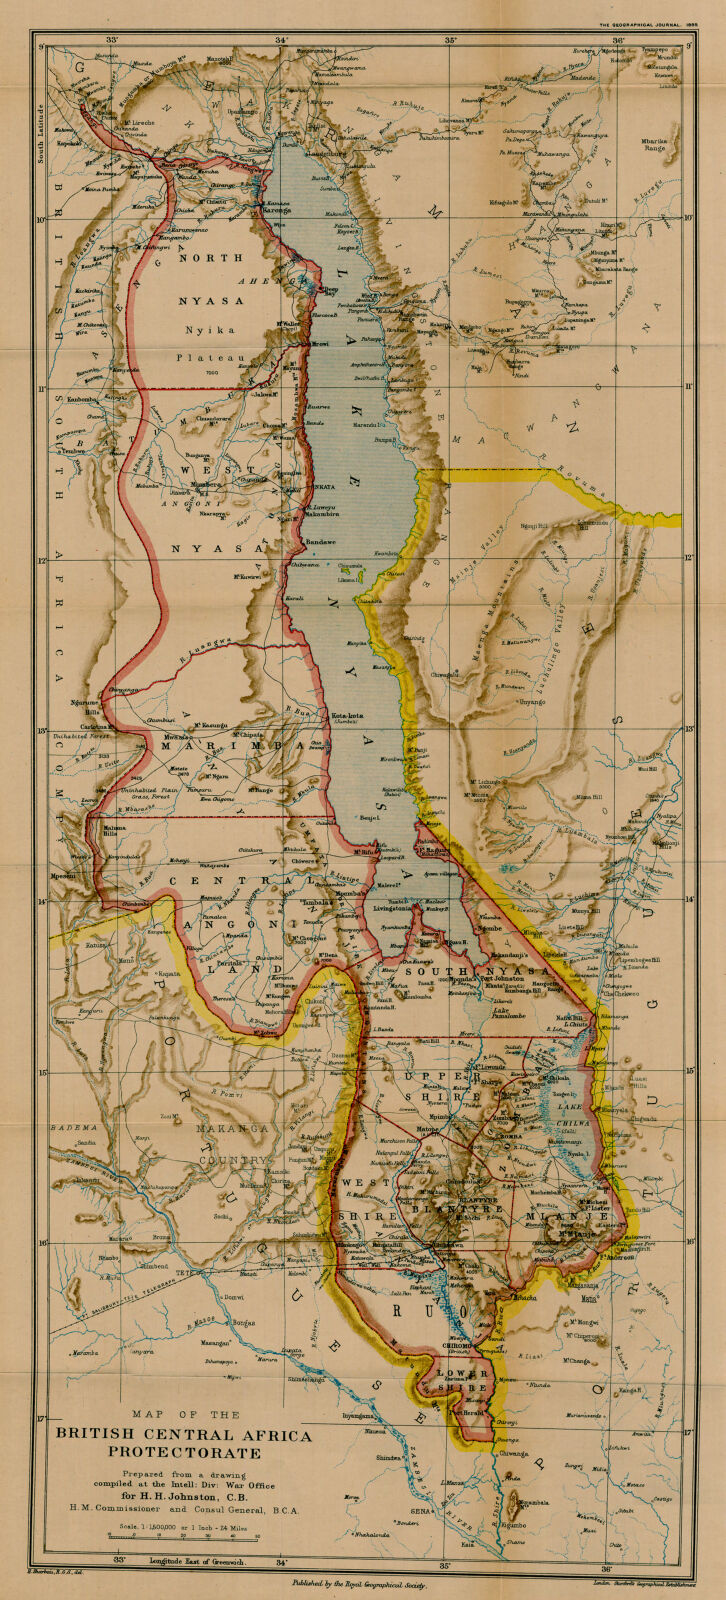 Map of the British Central Africa Protectorate. | Digital